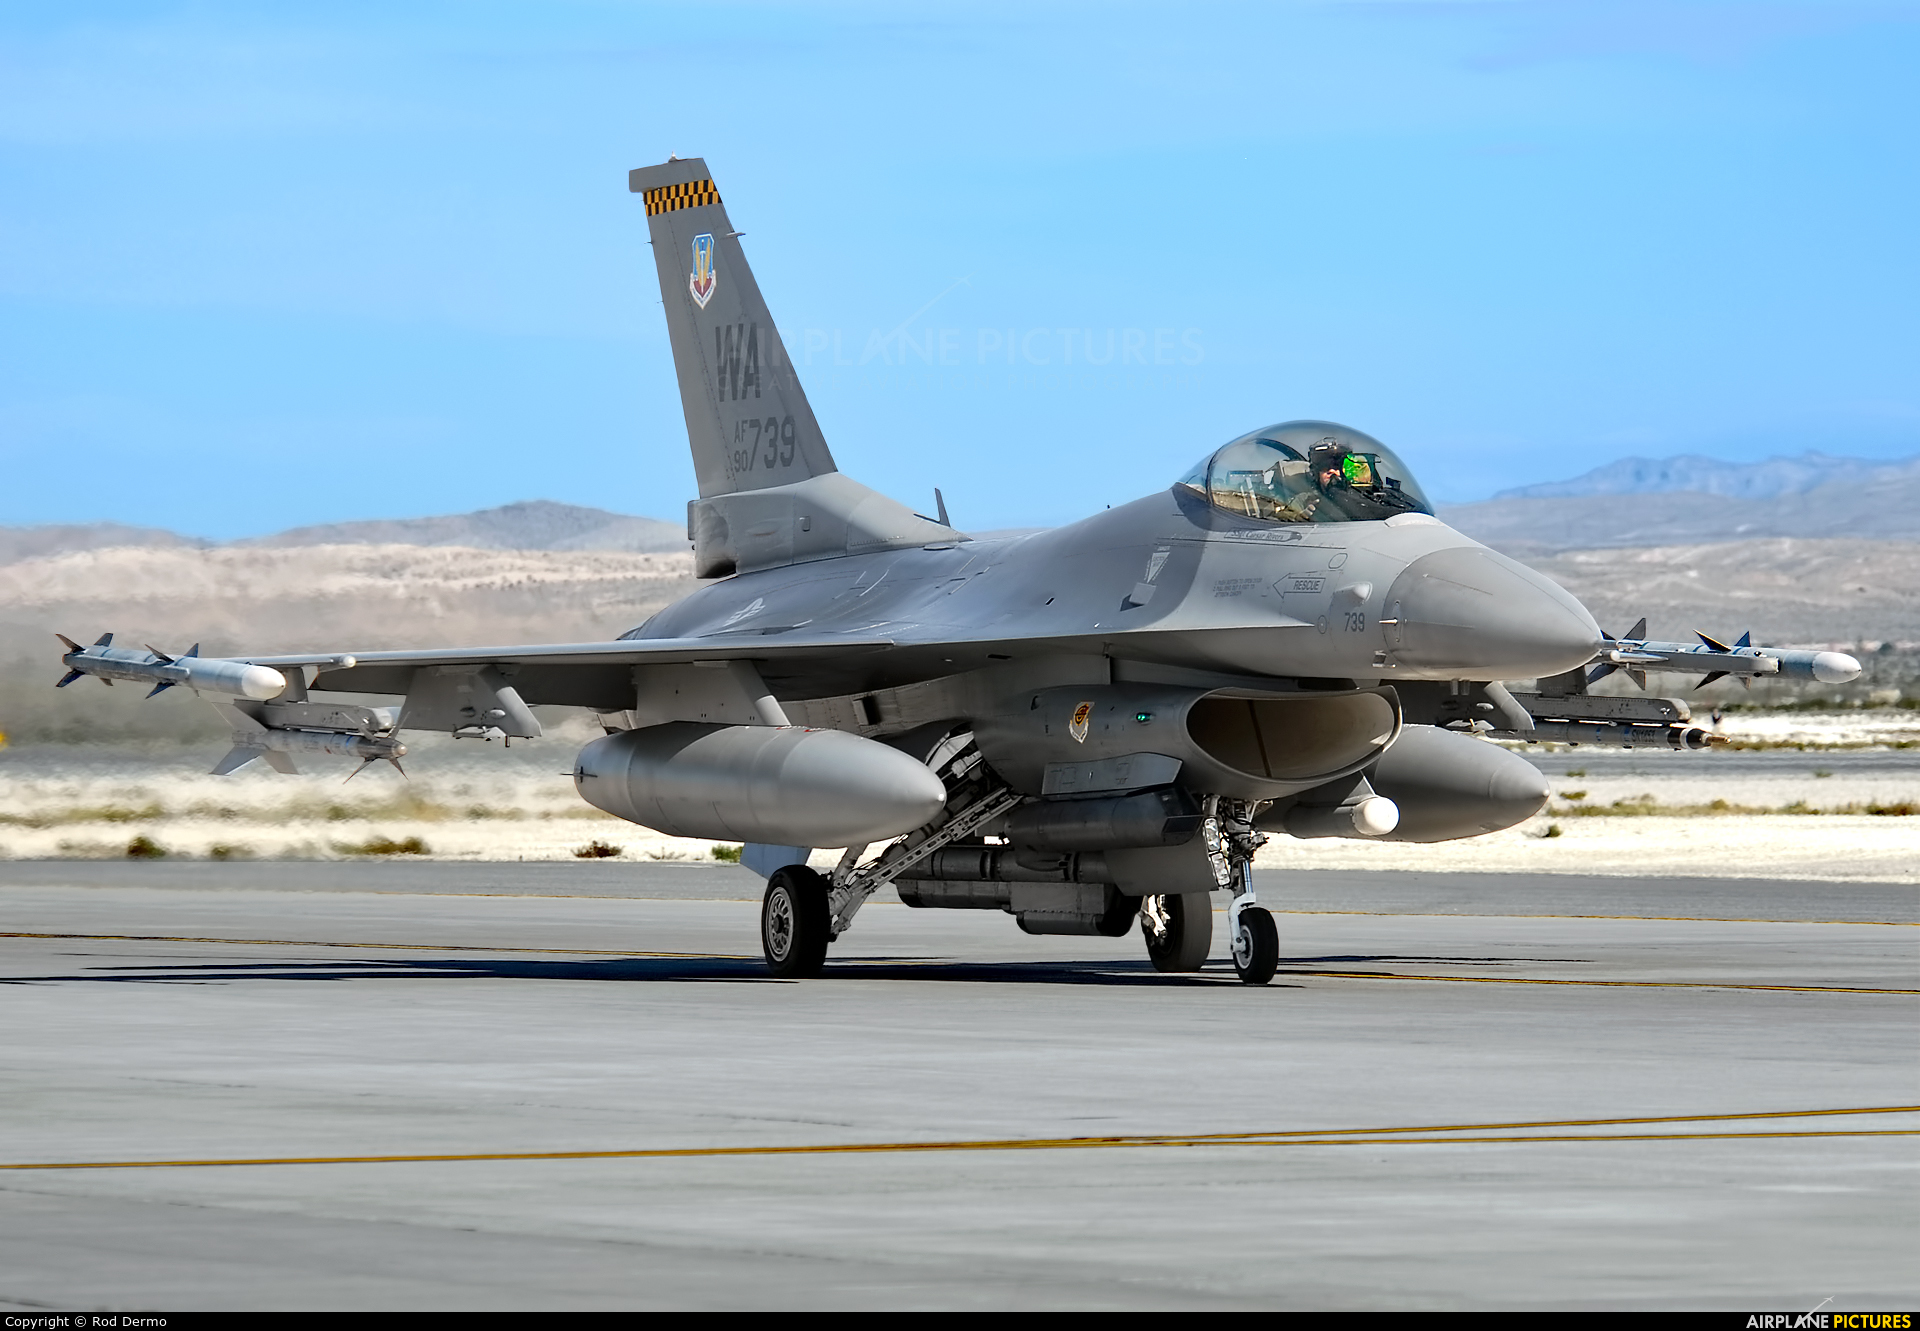 USA - Air Force 90-0739 aircraft at Nellis AFB